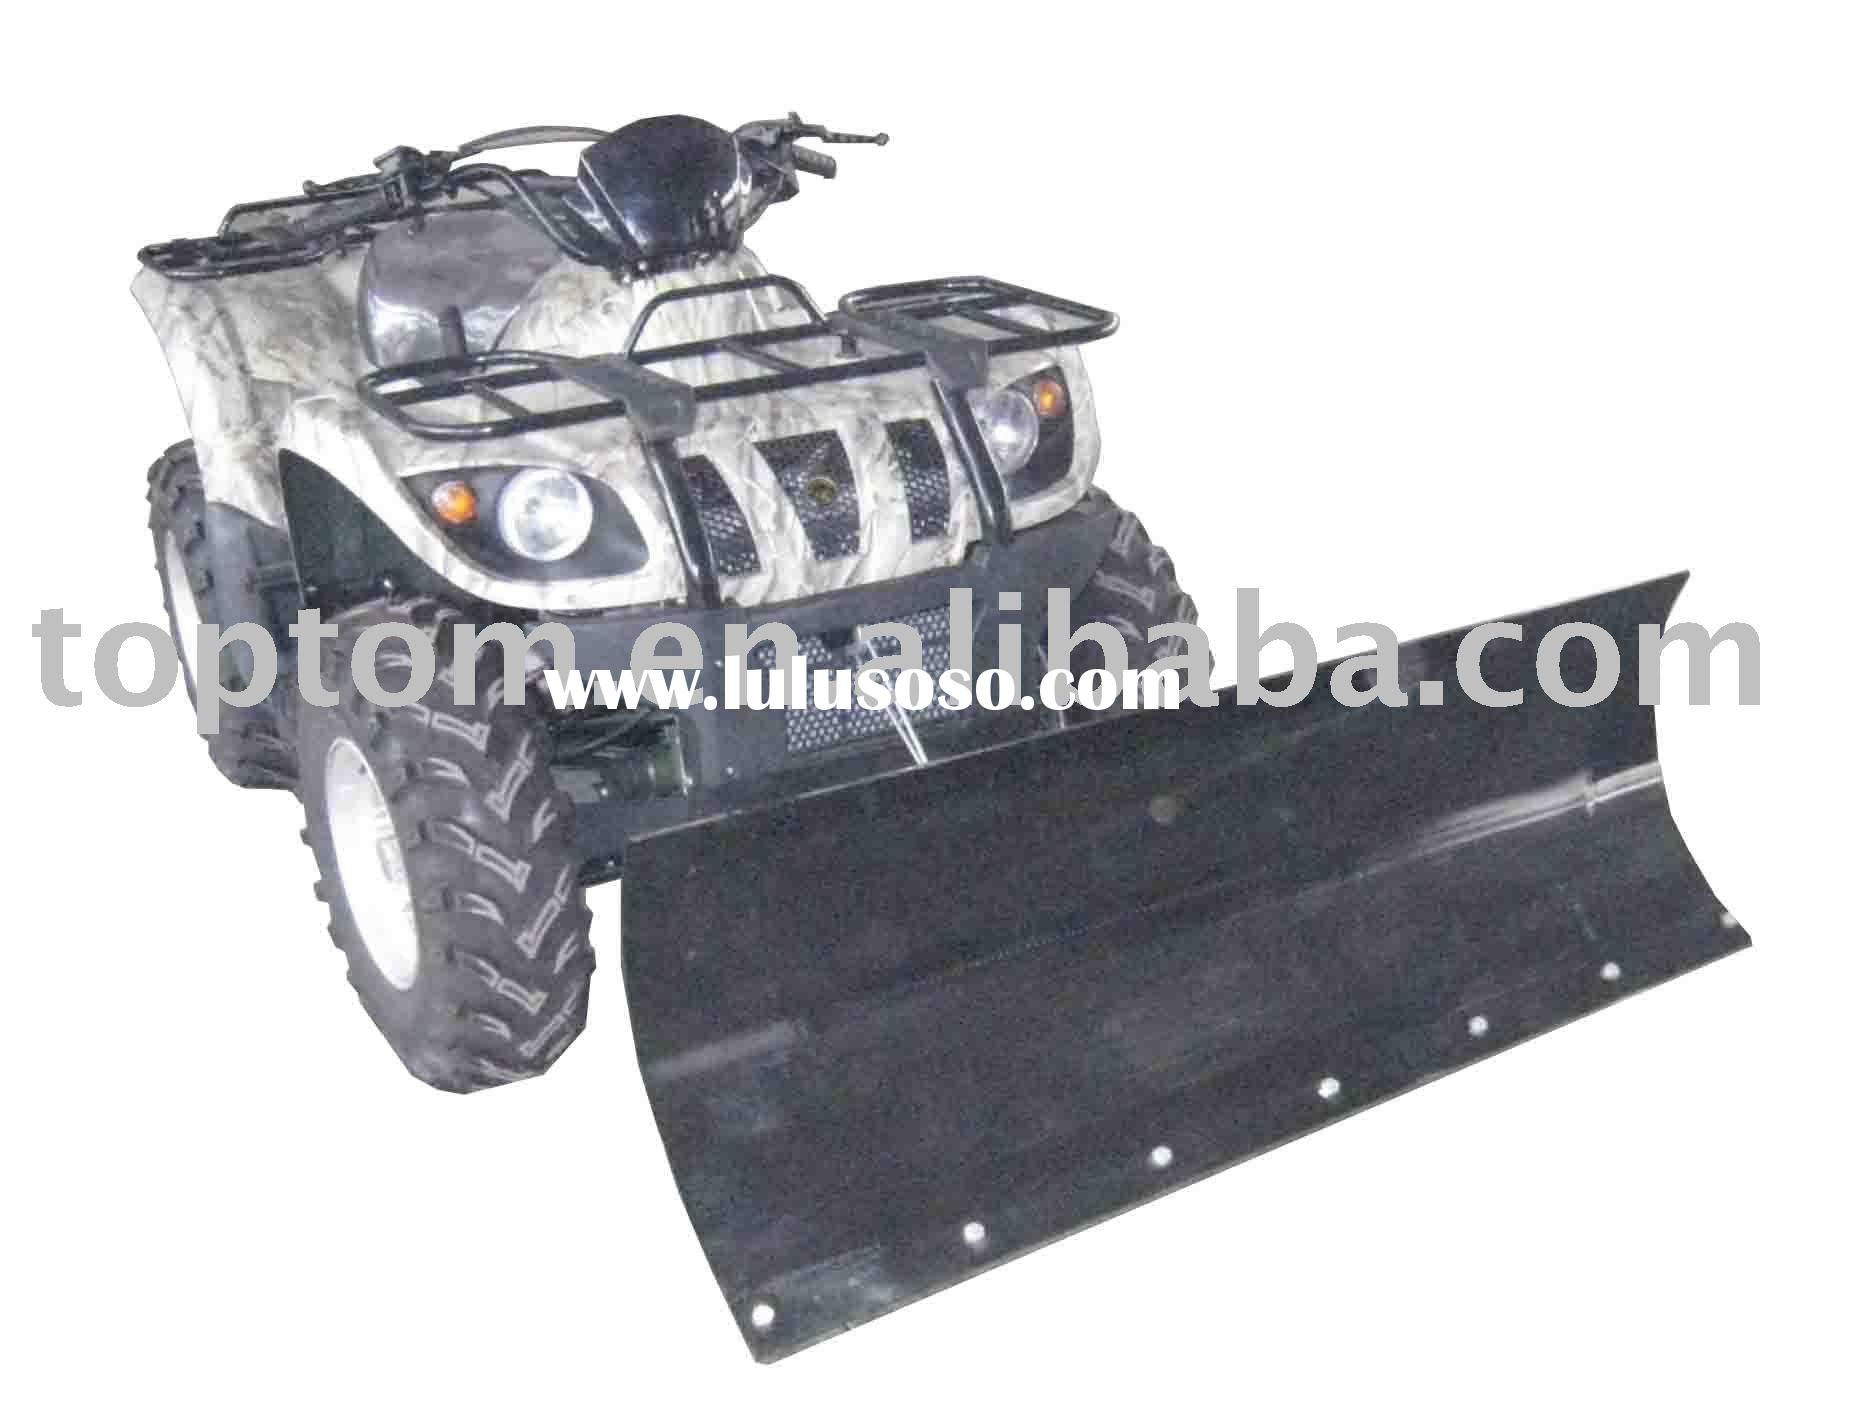 New Snow blade,snow plow, snow blade, snowplow, ATV snow blade.Snow Plough, Snow Plower